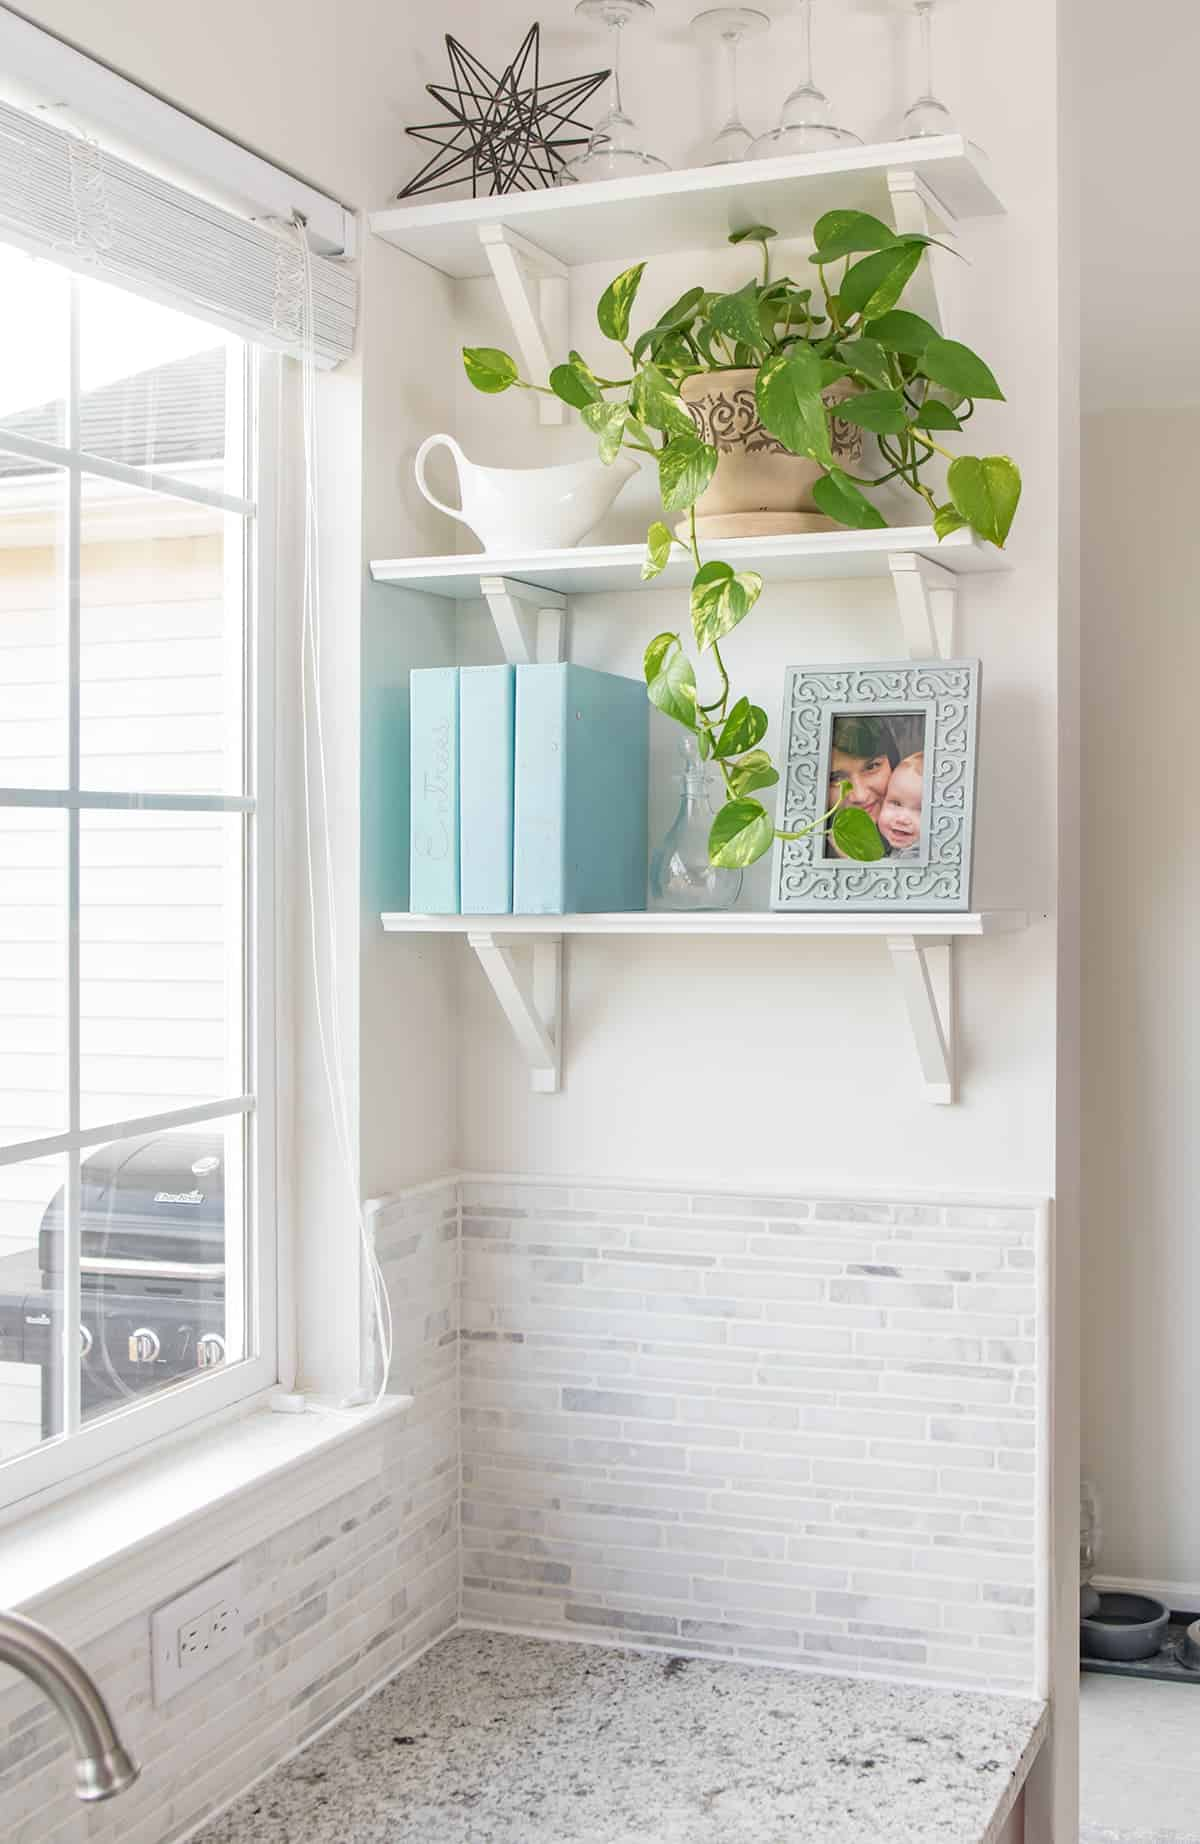 Kitchen window view by light neutral backsplash, white wall, and white free-floating shelves with potted plant, framed picture, and set of cookbooks.